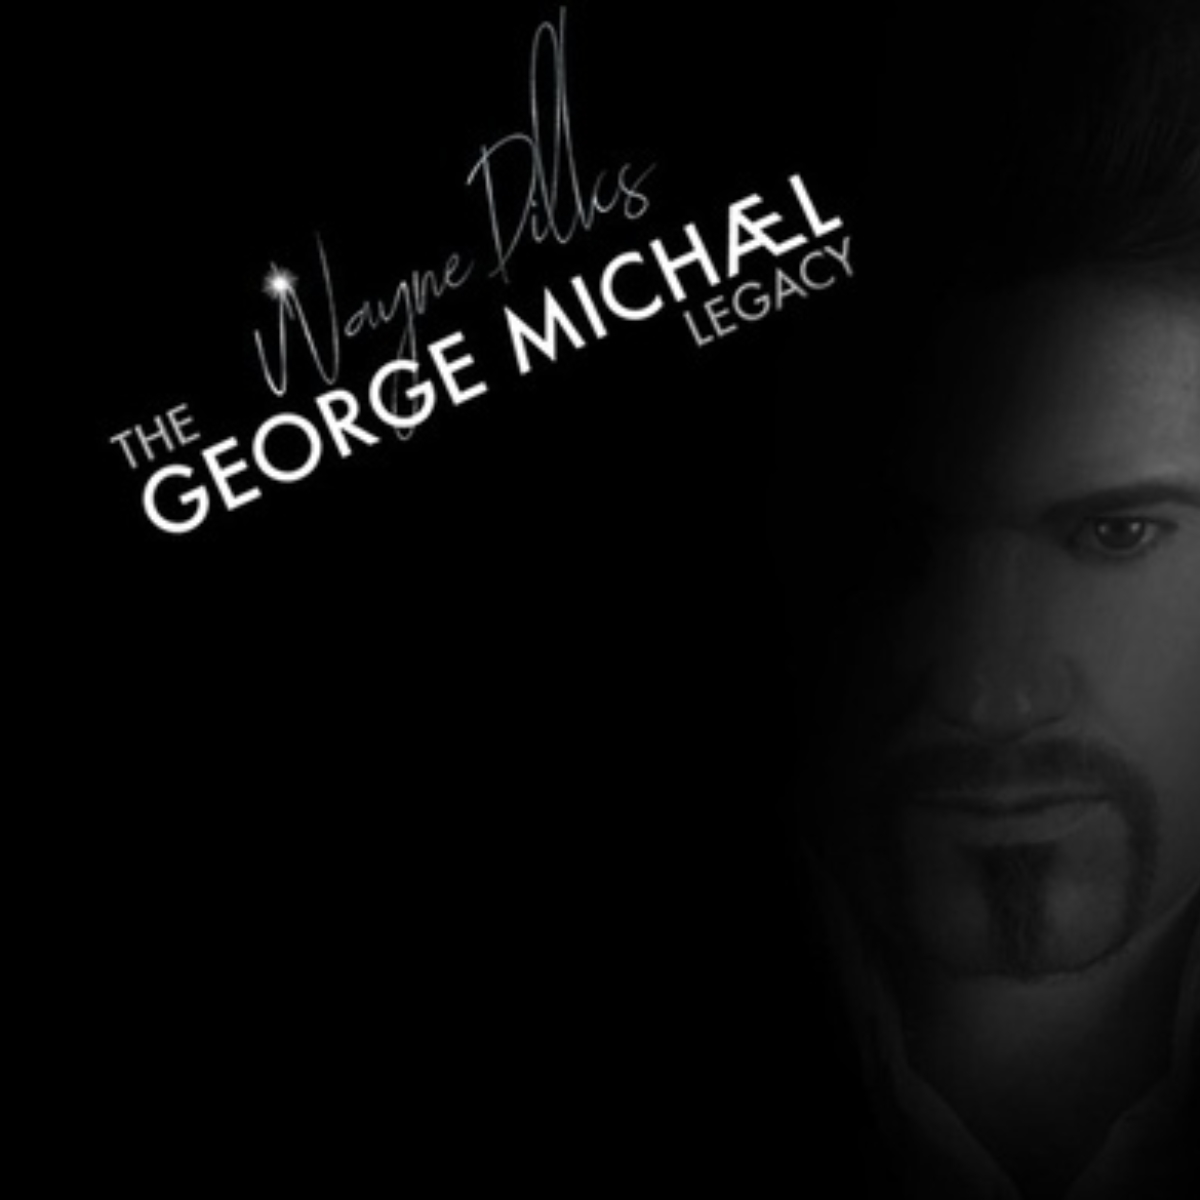 The George Michael Legacy featuring Wayne Dilks Images